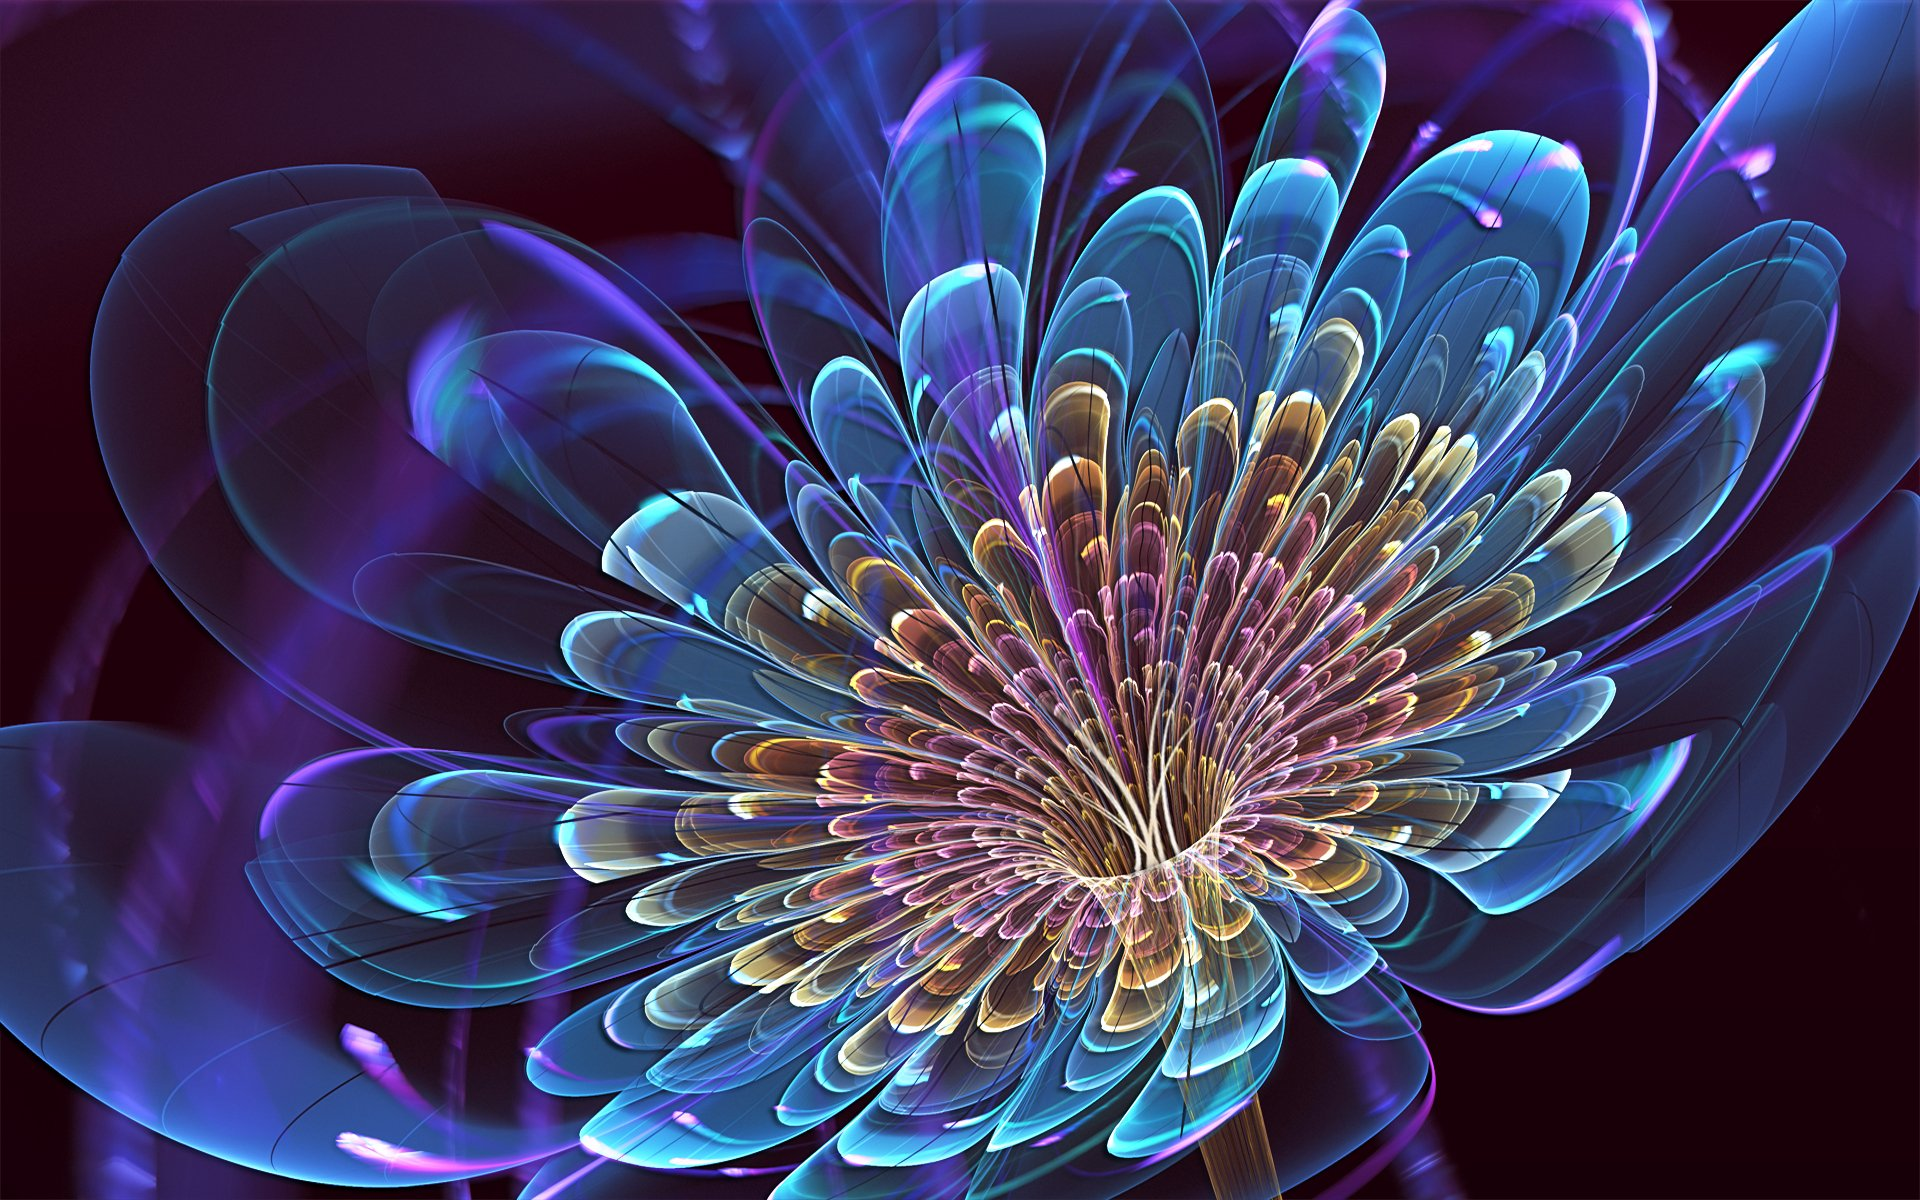 3D Blooming Flower Widescreen HD Wallpaper 1920x1200